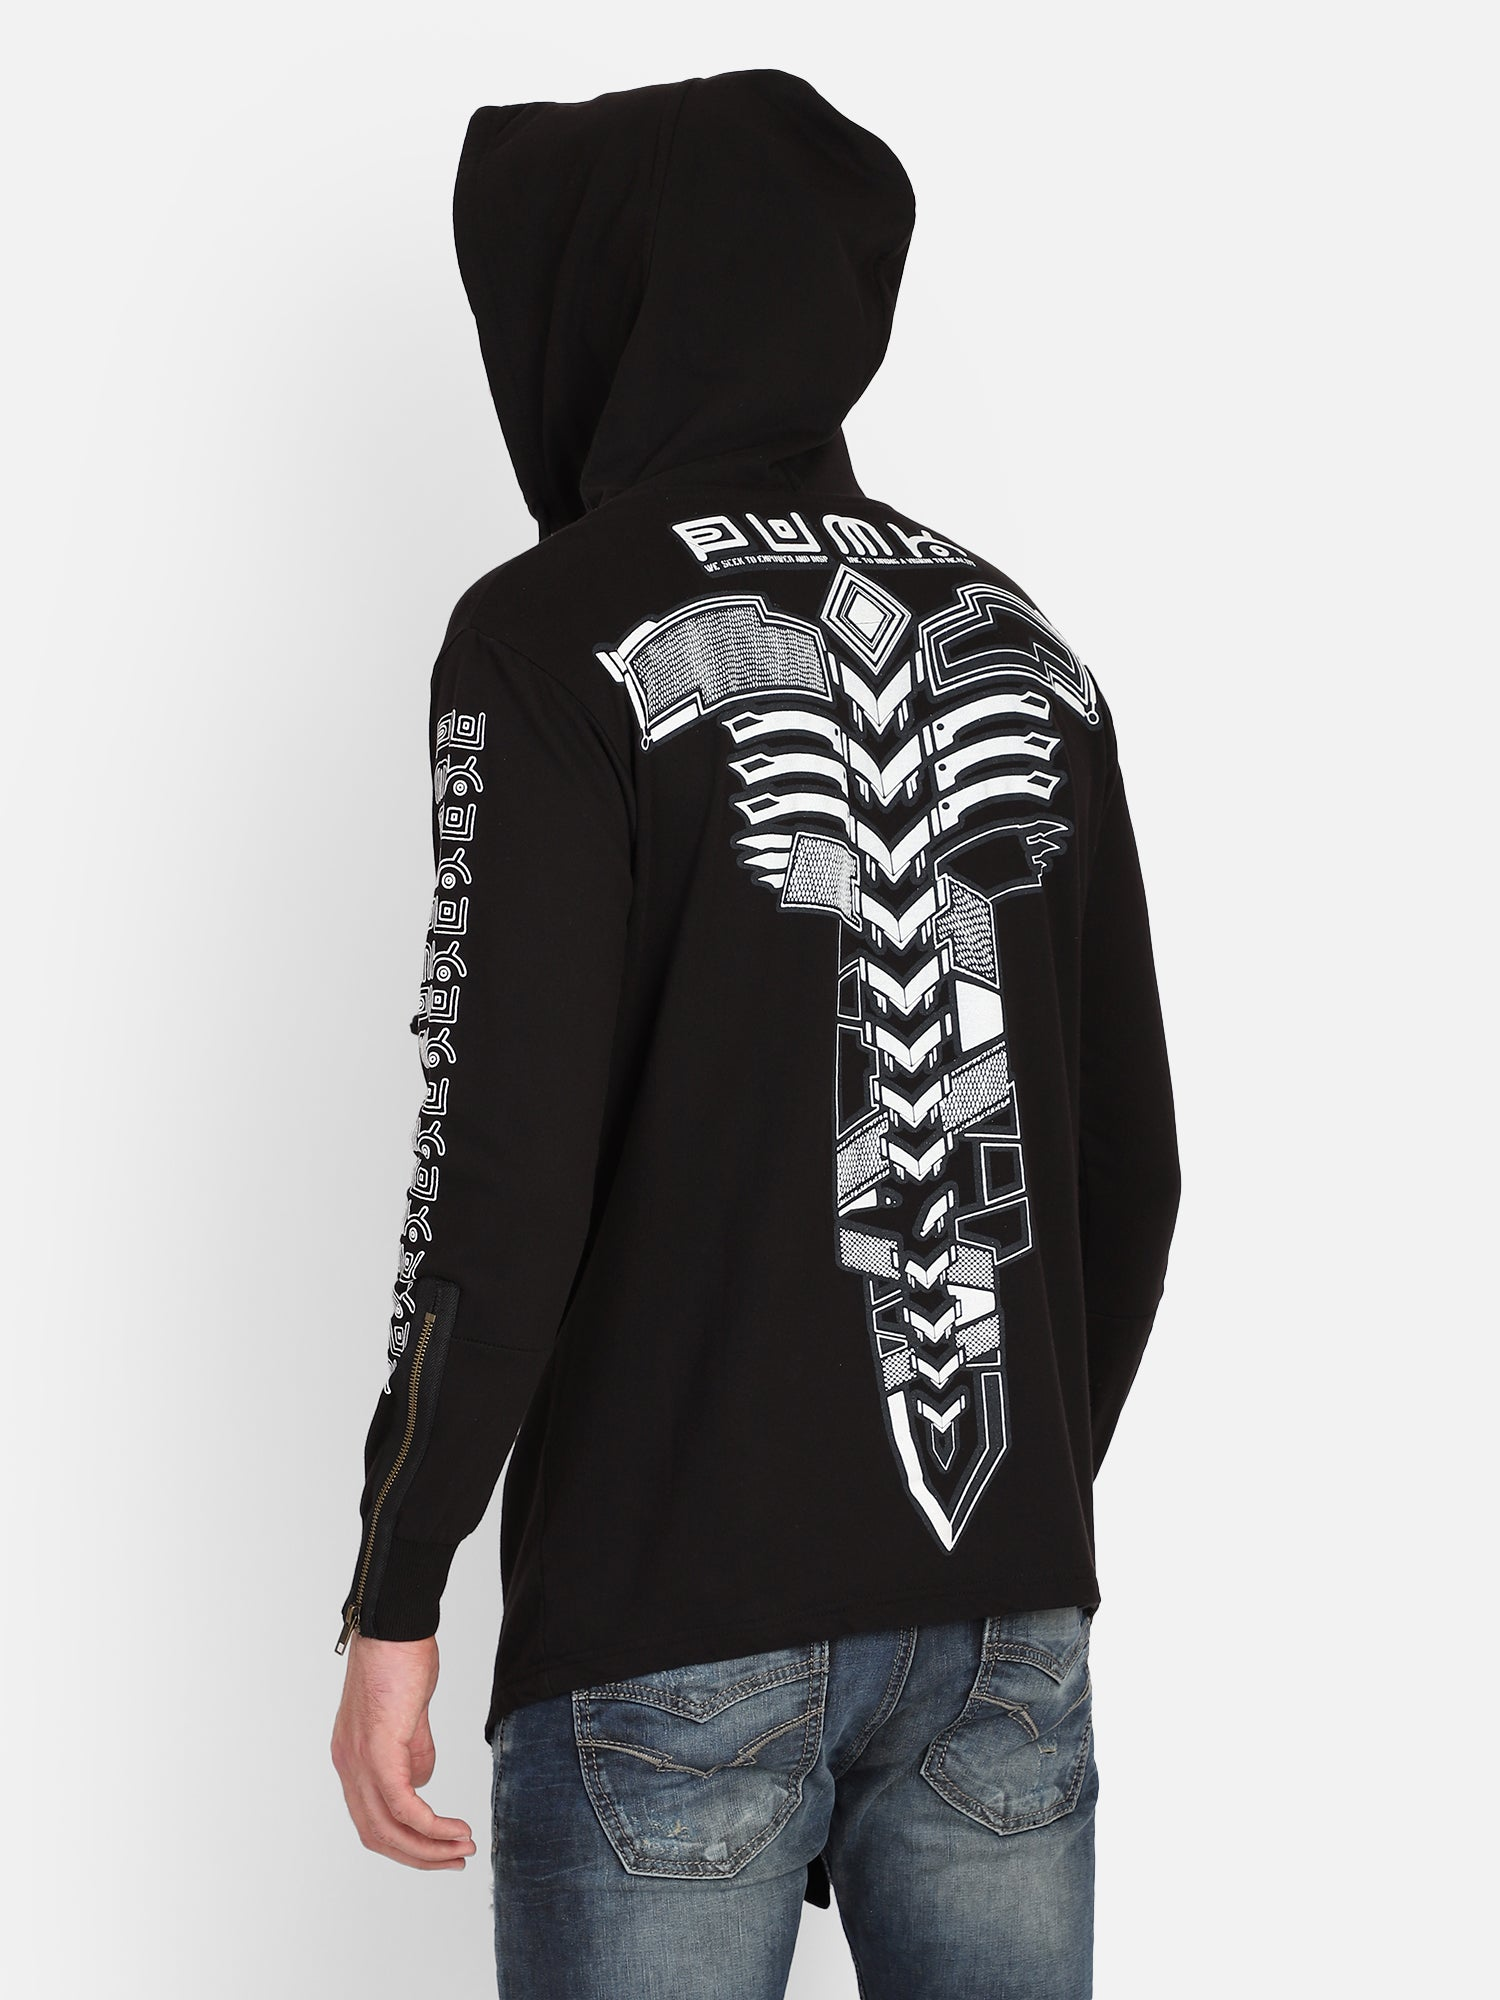 Fashion Hoodies & Sweatshirts For Men | Punk